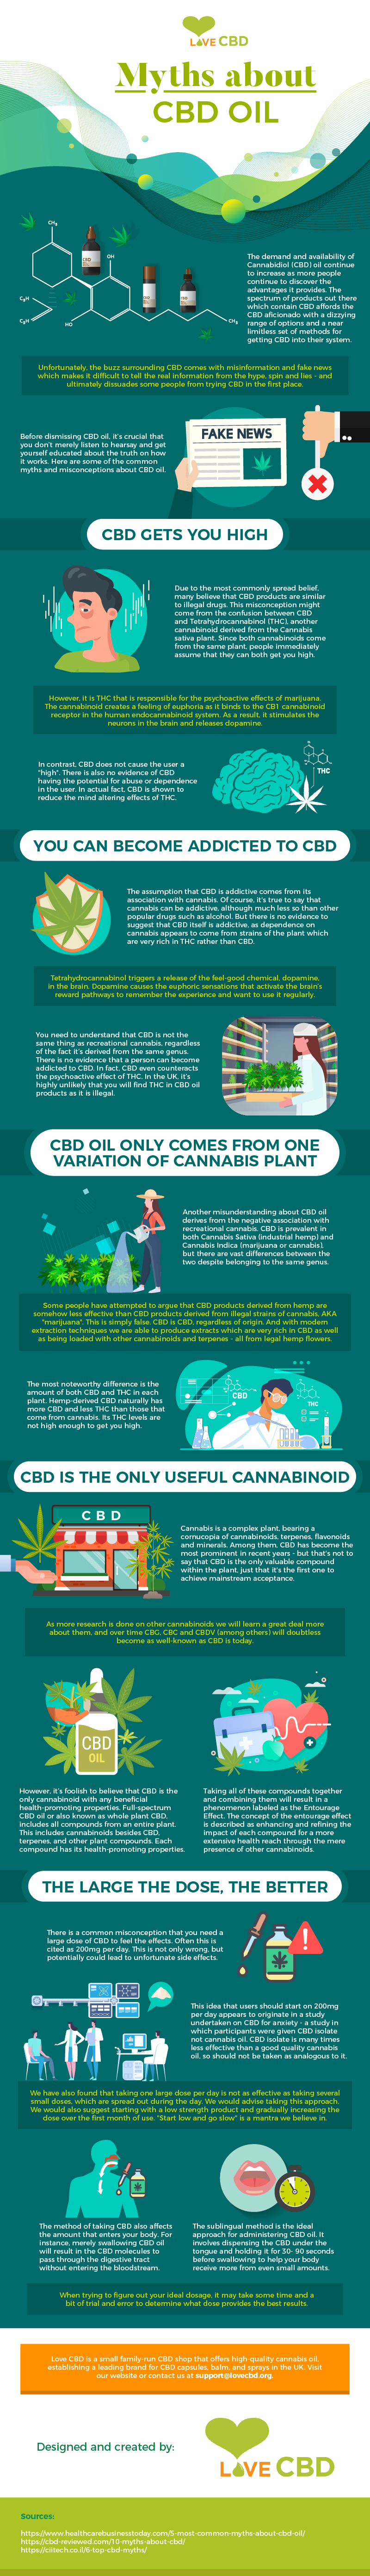 Myths About CBD Oil #infographic #Health